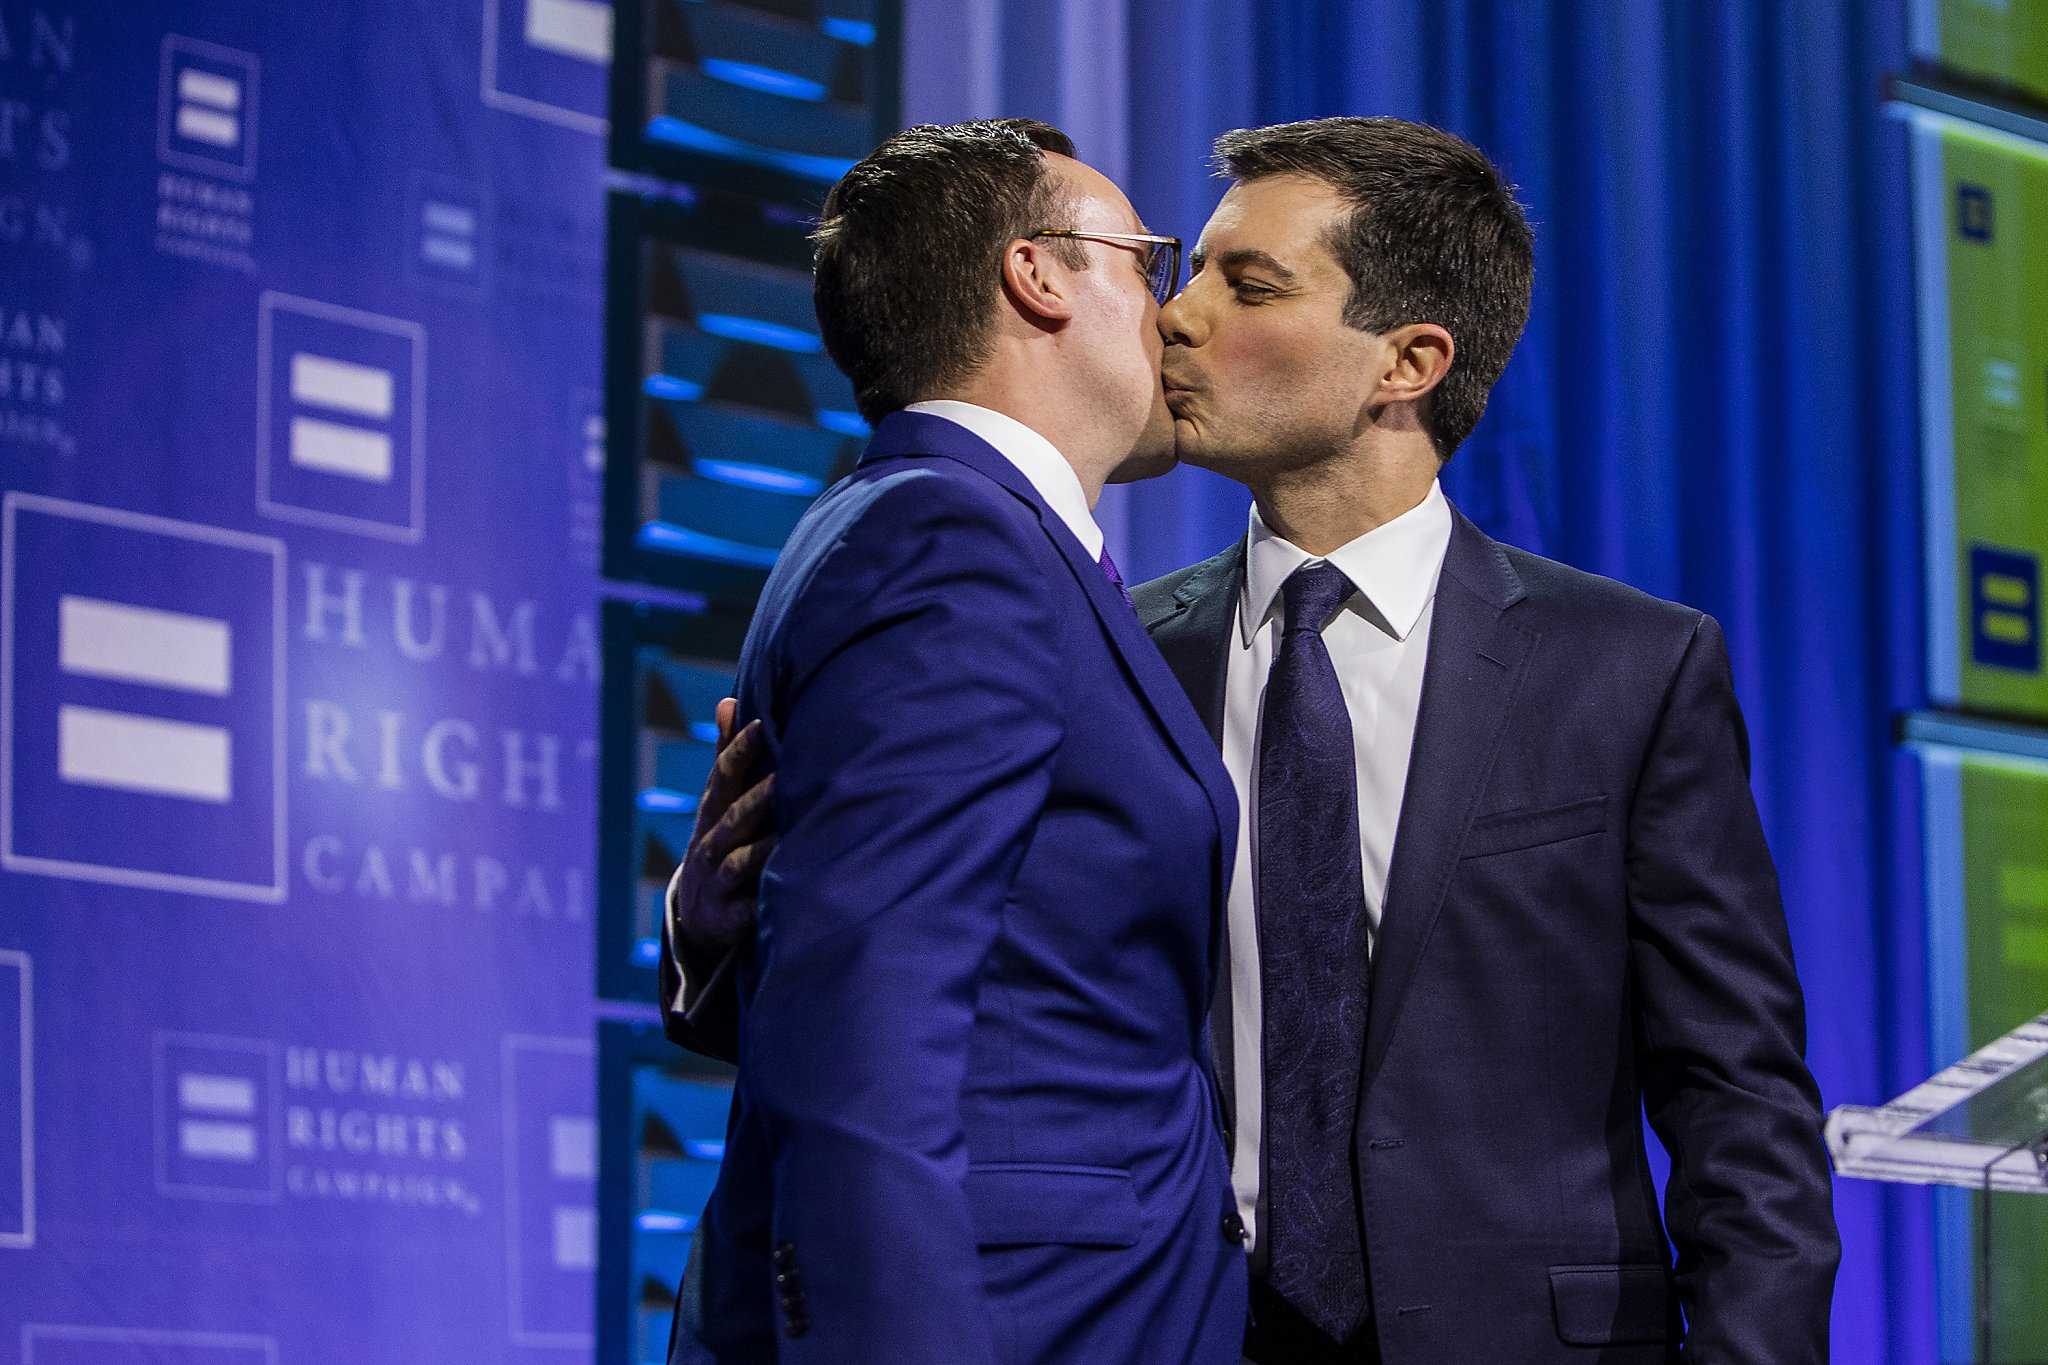 Inside Pete Buttigieg's Wholesome OnlyFans Page